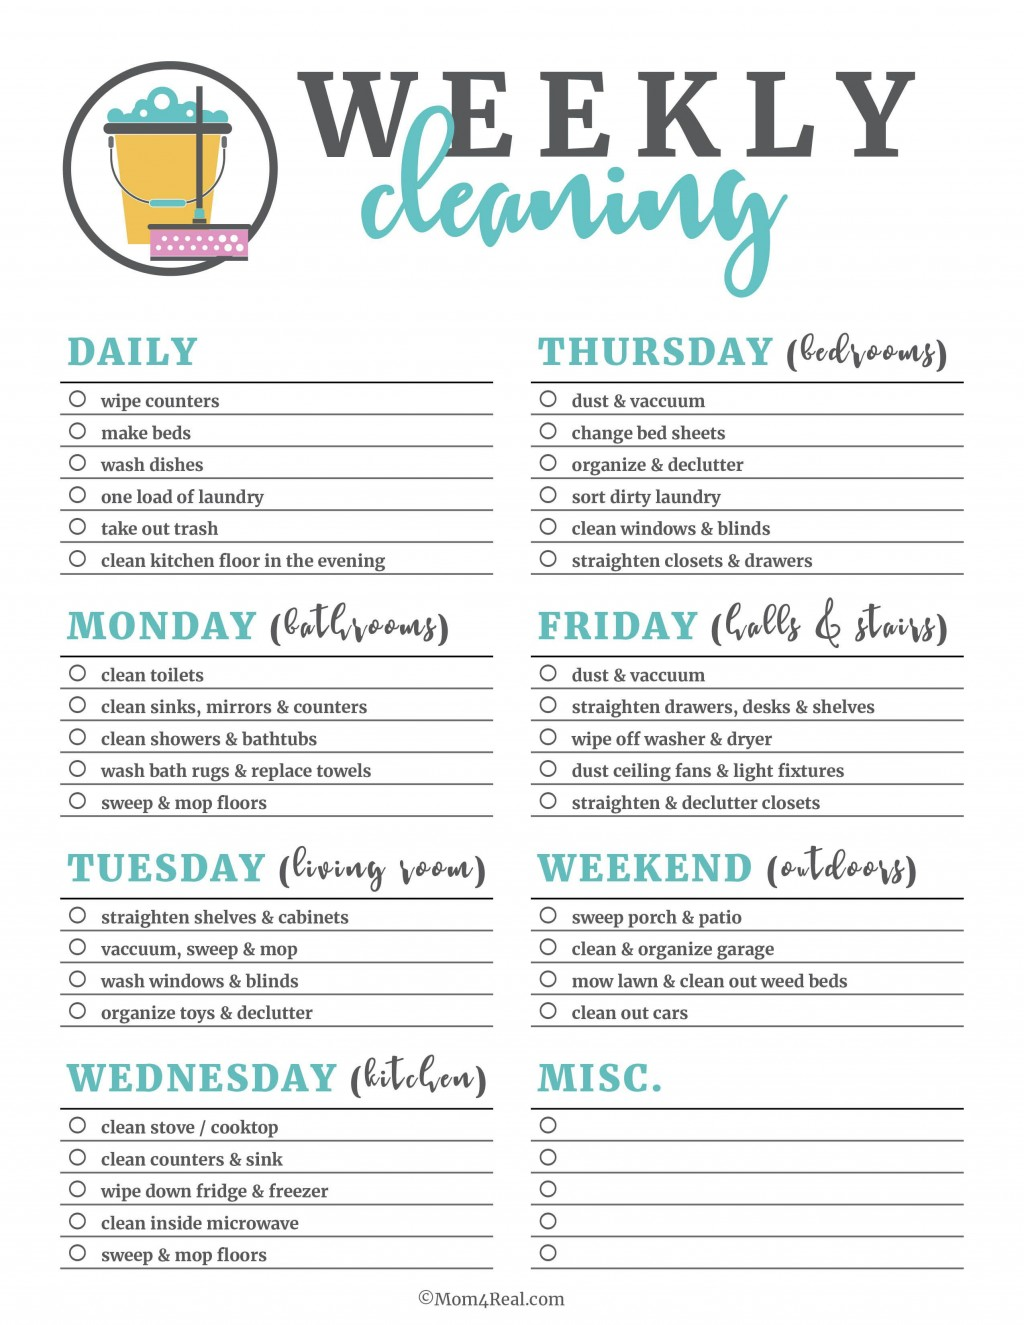 003 Incredible Weekly Cleaning Schedule Format High Definition  Template Free SampleLarge